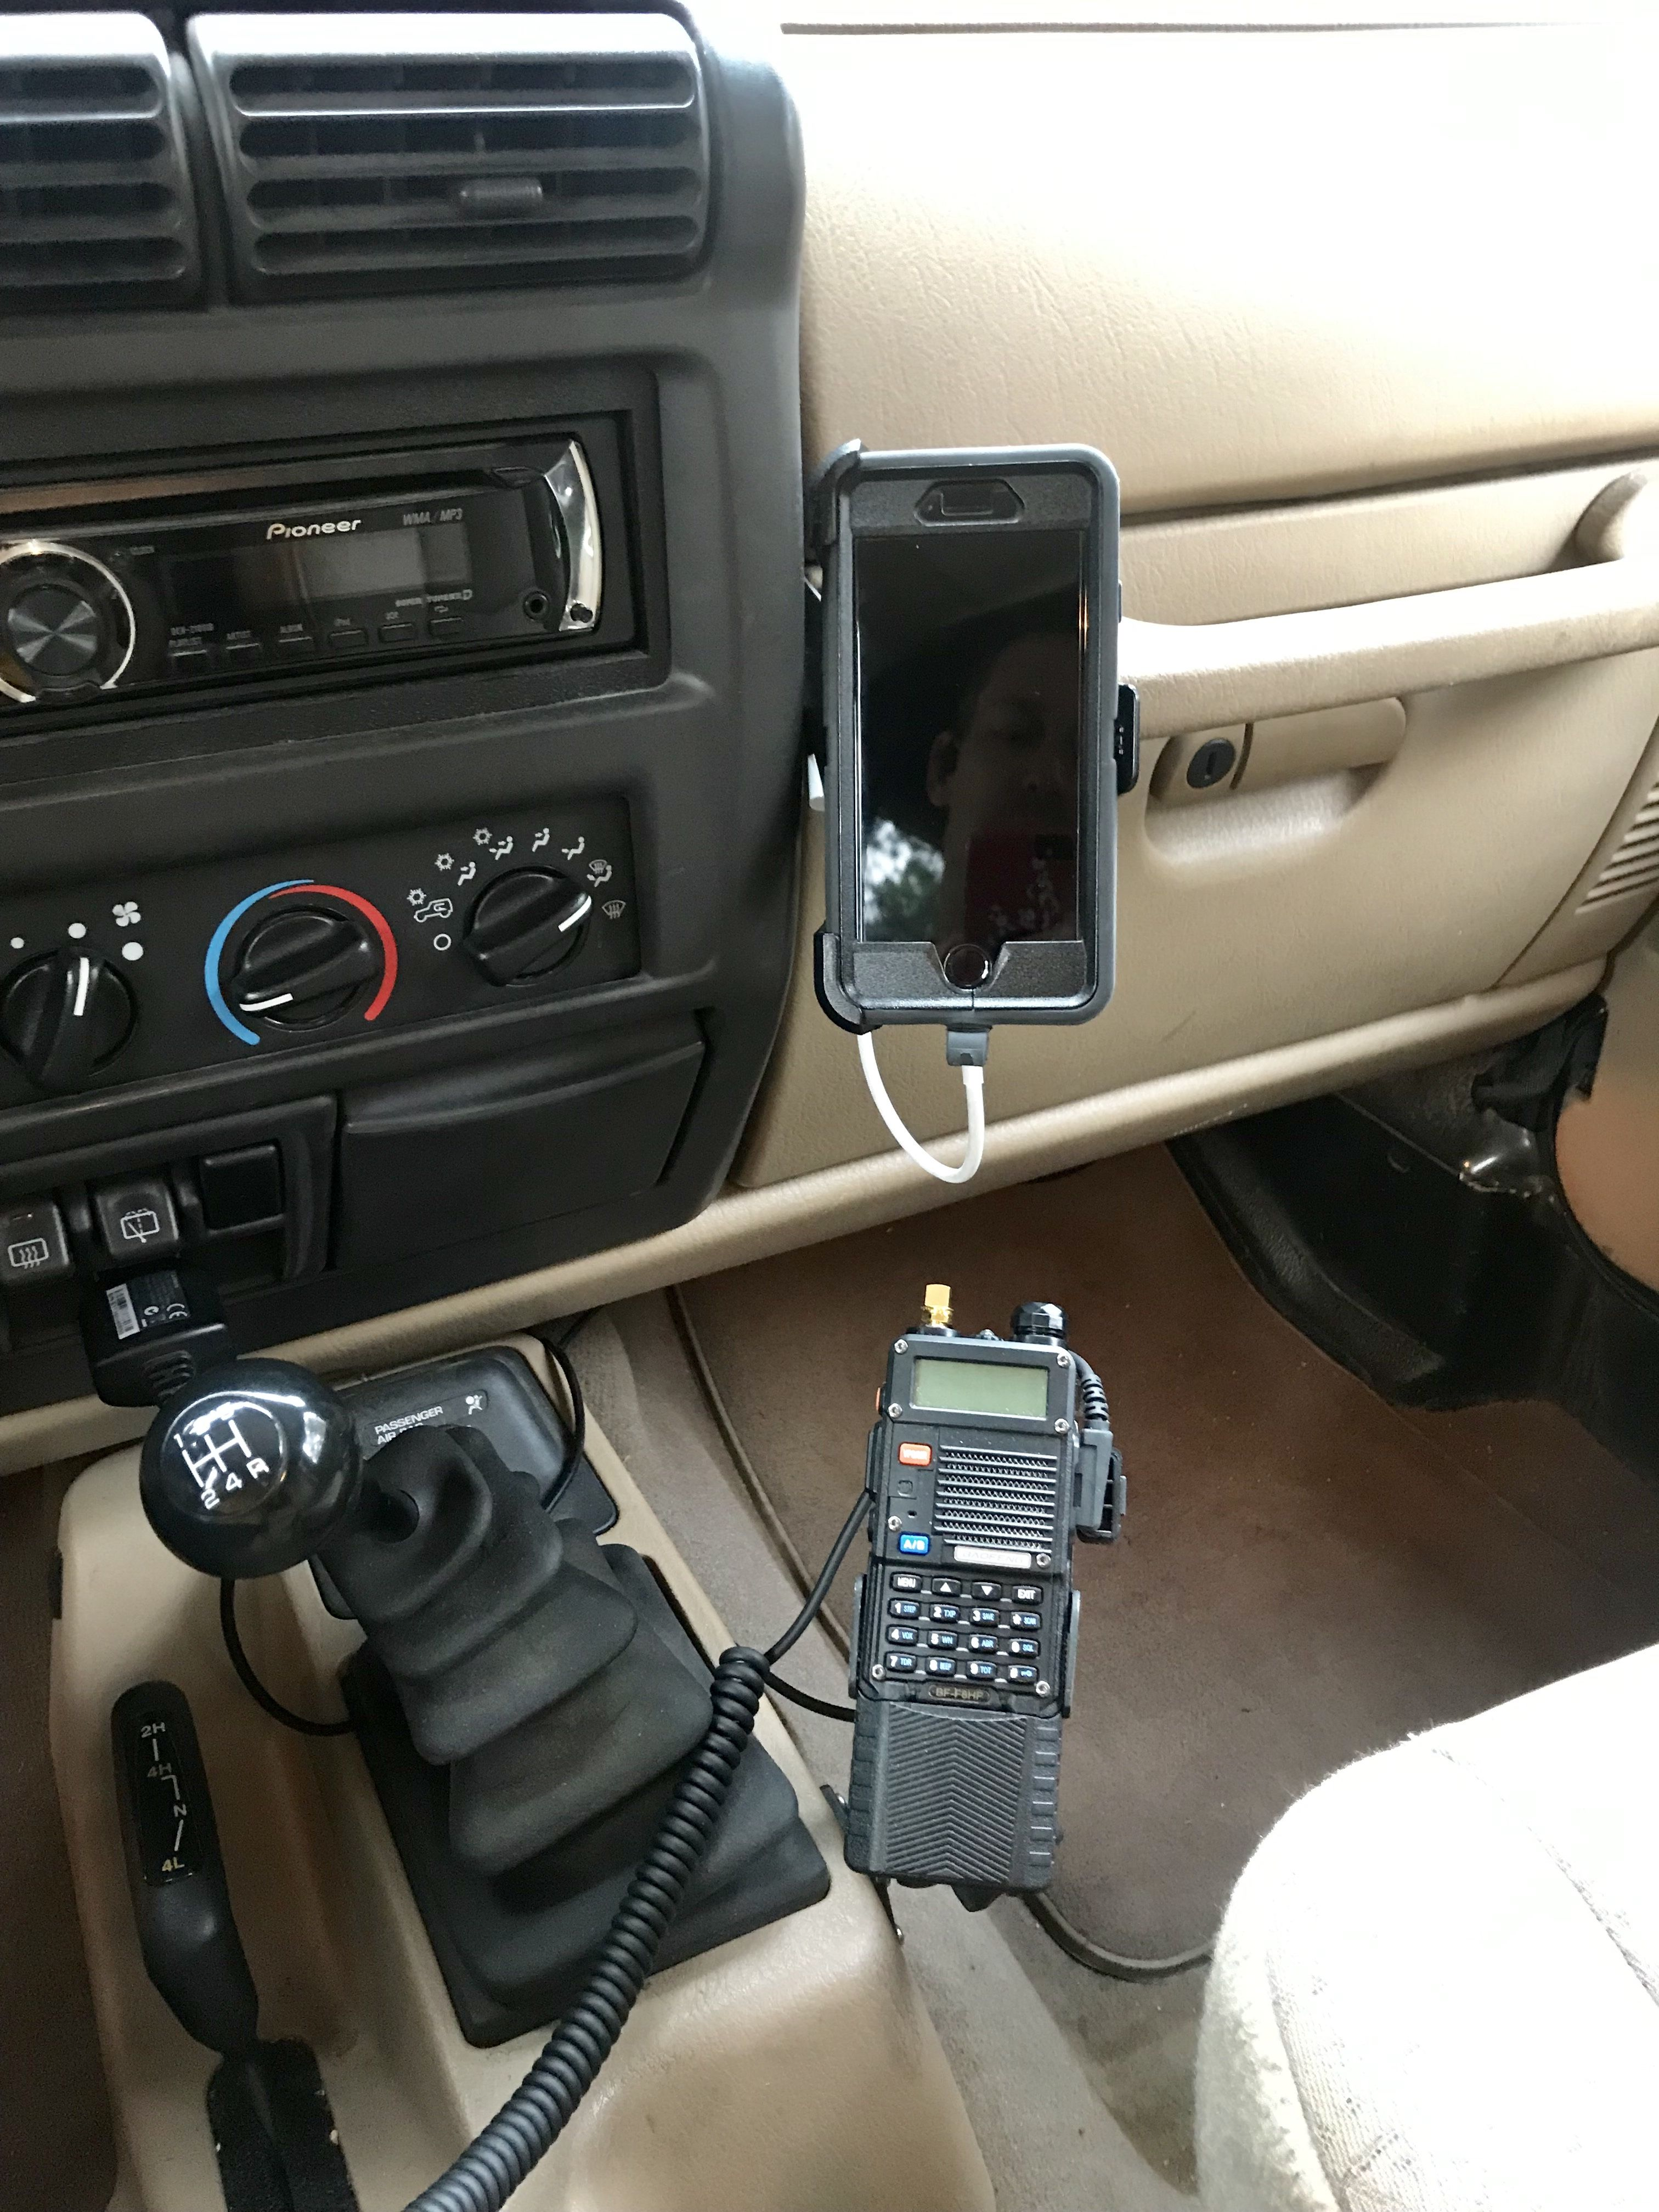 Pin By Gregg Senecal On Other In 2020 Ham Radio Antenna Jeep Wrangler Jeep